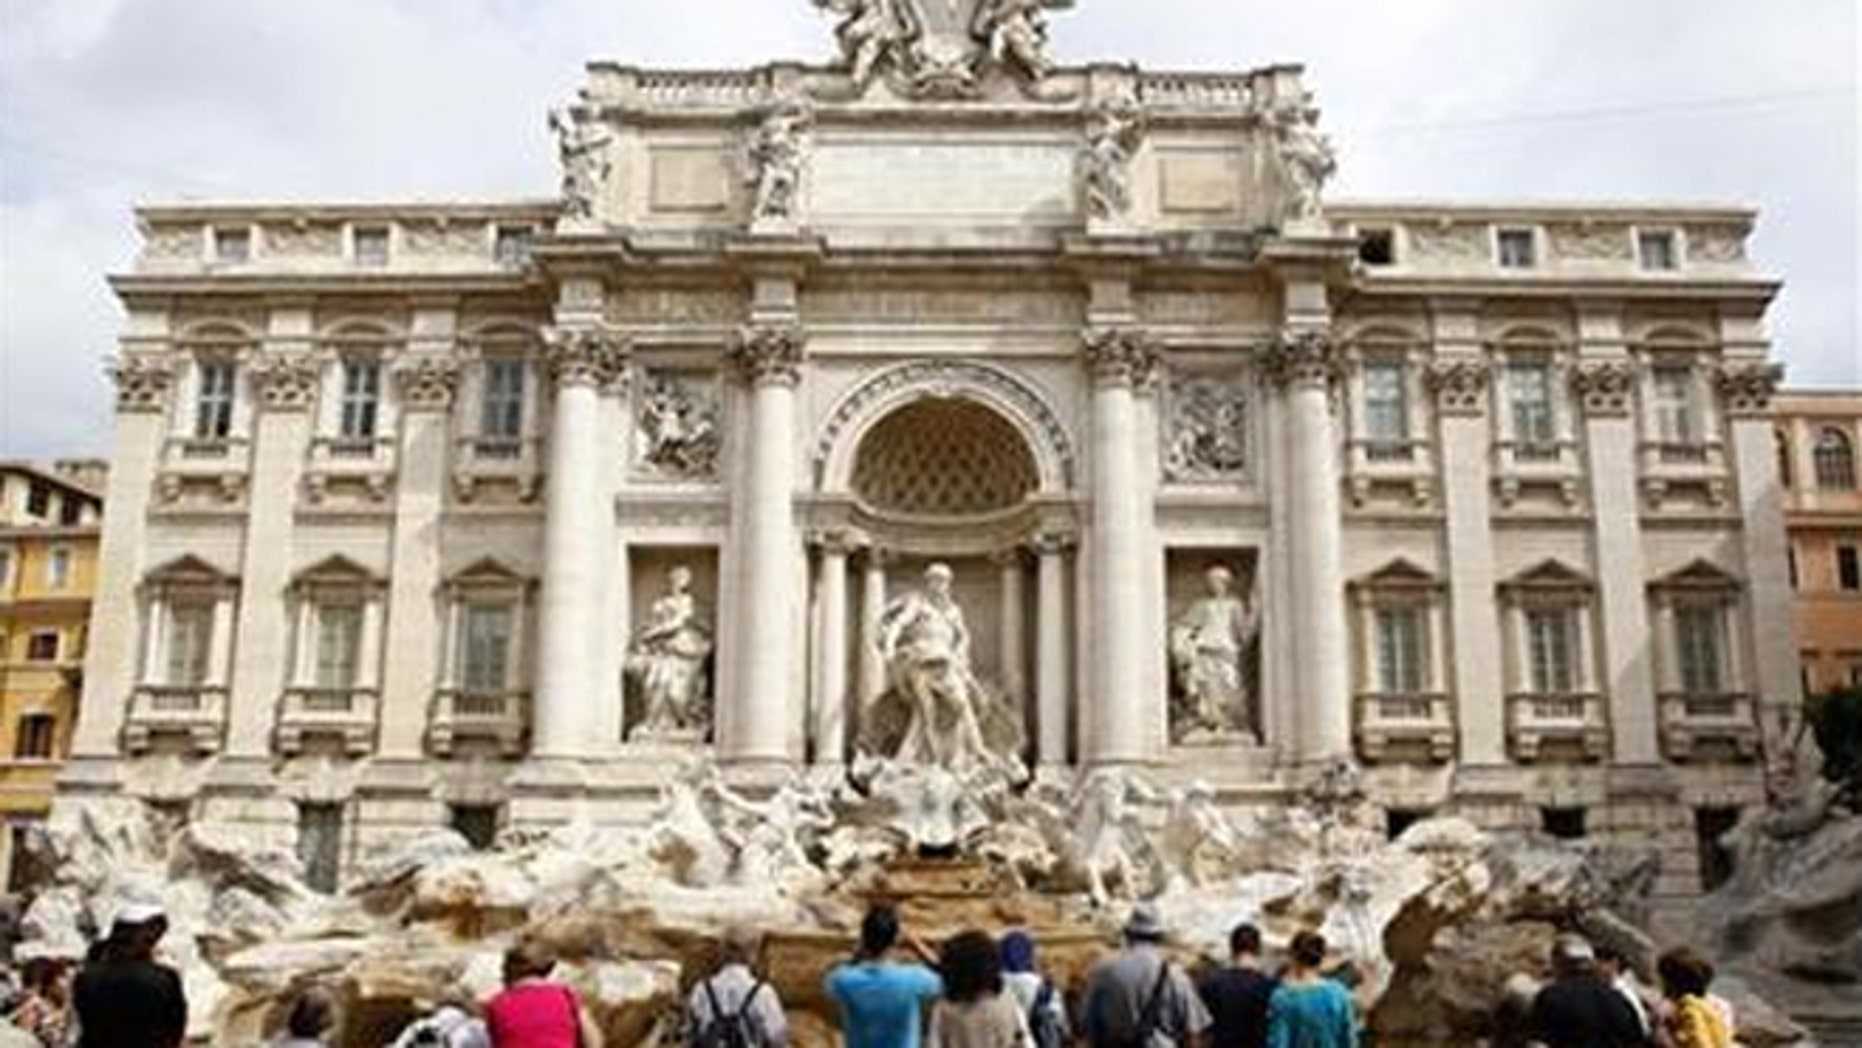 The Trevi Fountain got a $2.2M makeover after pieces of its cornice began falling off.